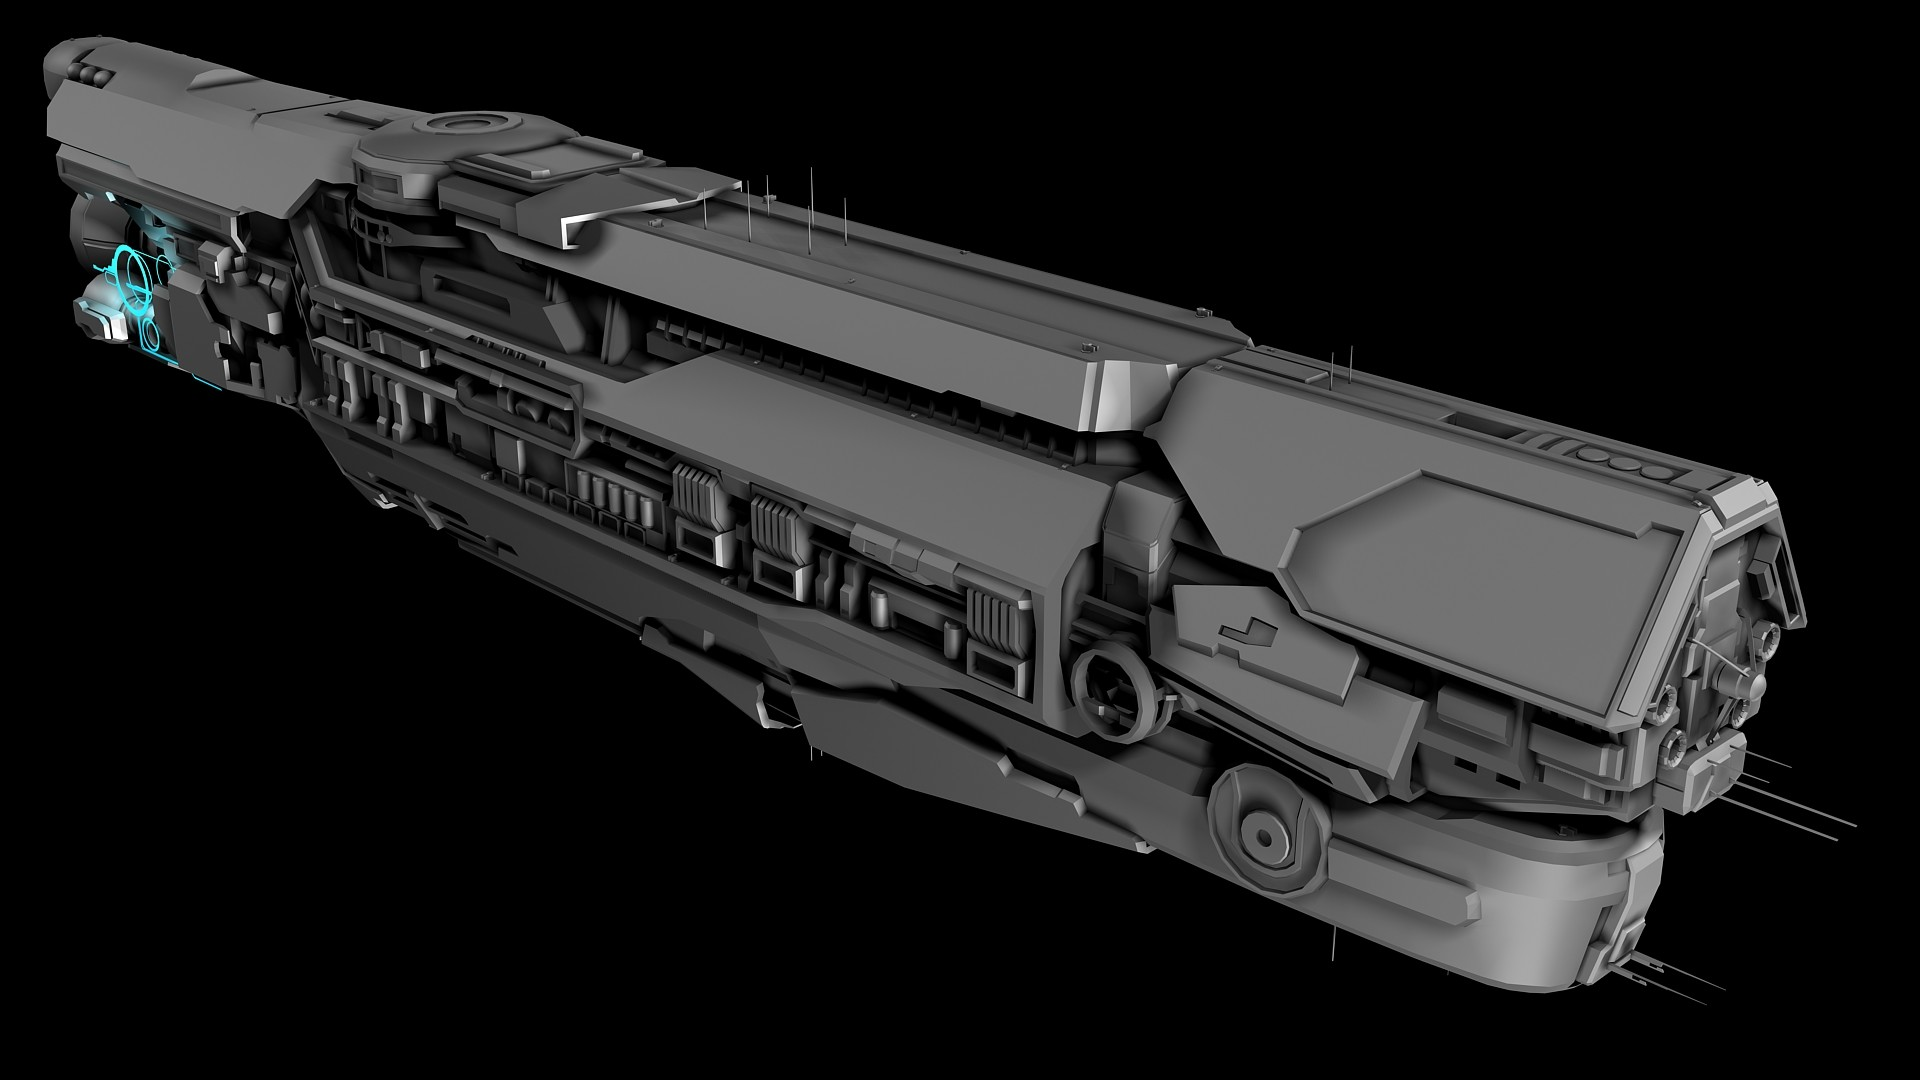 ArtStation - UNSC Infinity-class warship WIP, Jared Harris